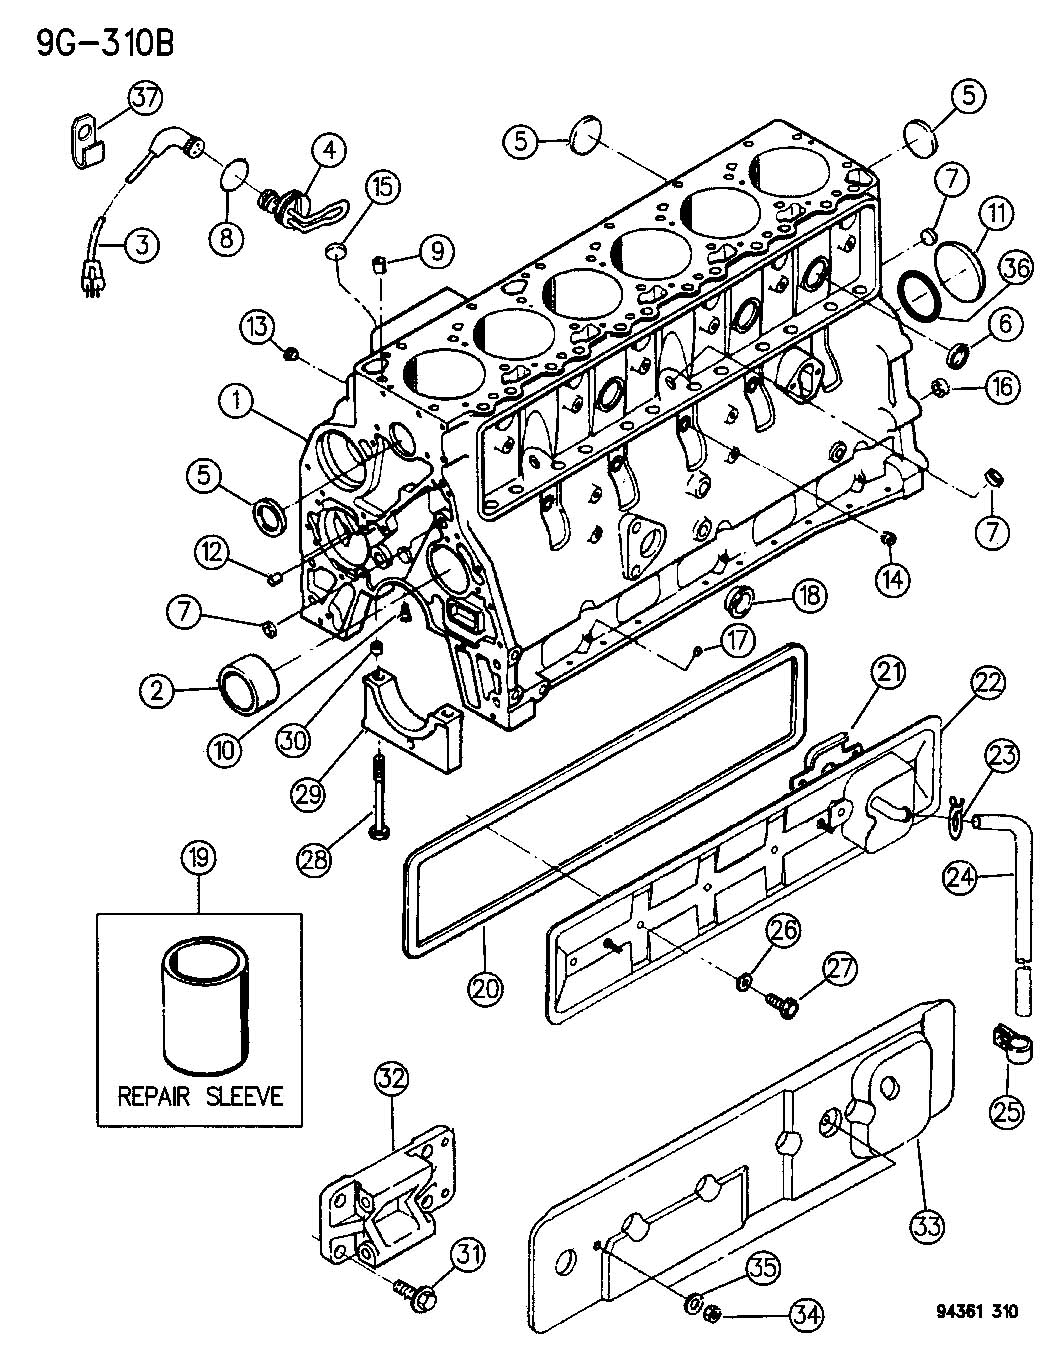 dodge sprinter wiring diagram with Dodge 5 9 Engine Diagram on 207365226 Chrysler Pt Cruiser 2001 2004 Parts Manual in addition 2014 Freightliner Sprinter Fuse Diagram besides Isuzu Hombre 4 3l Automatic Transmission Control System Wiring Diagram besides Freightliner Belt Routing Diagram moreover T16606060 2007 gmc denali evap canister vent valve.